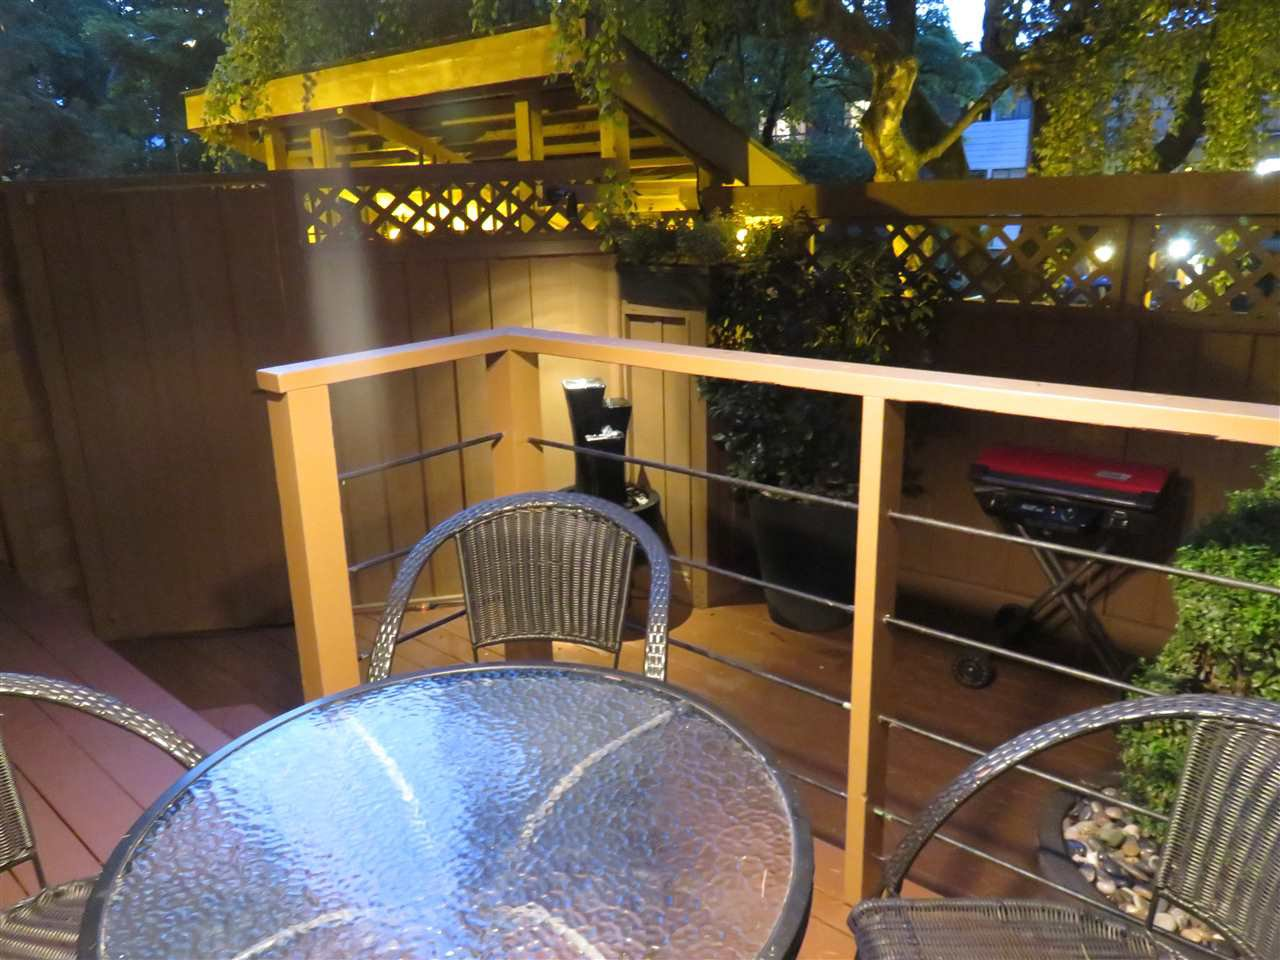 """Photo 2: Photos: 101 1930 W 3RD Avenue in Vancouver: Kitsilano Condo for sale in """"WESTVIEW"""" (Vancouver West)  : MLS®# R2169188"""